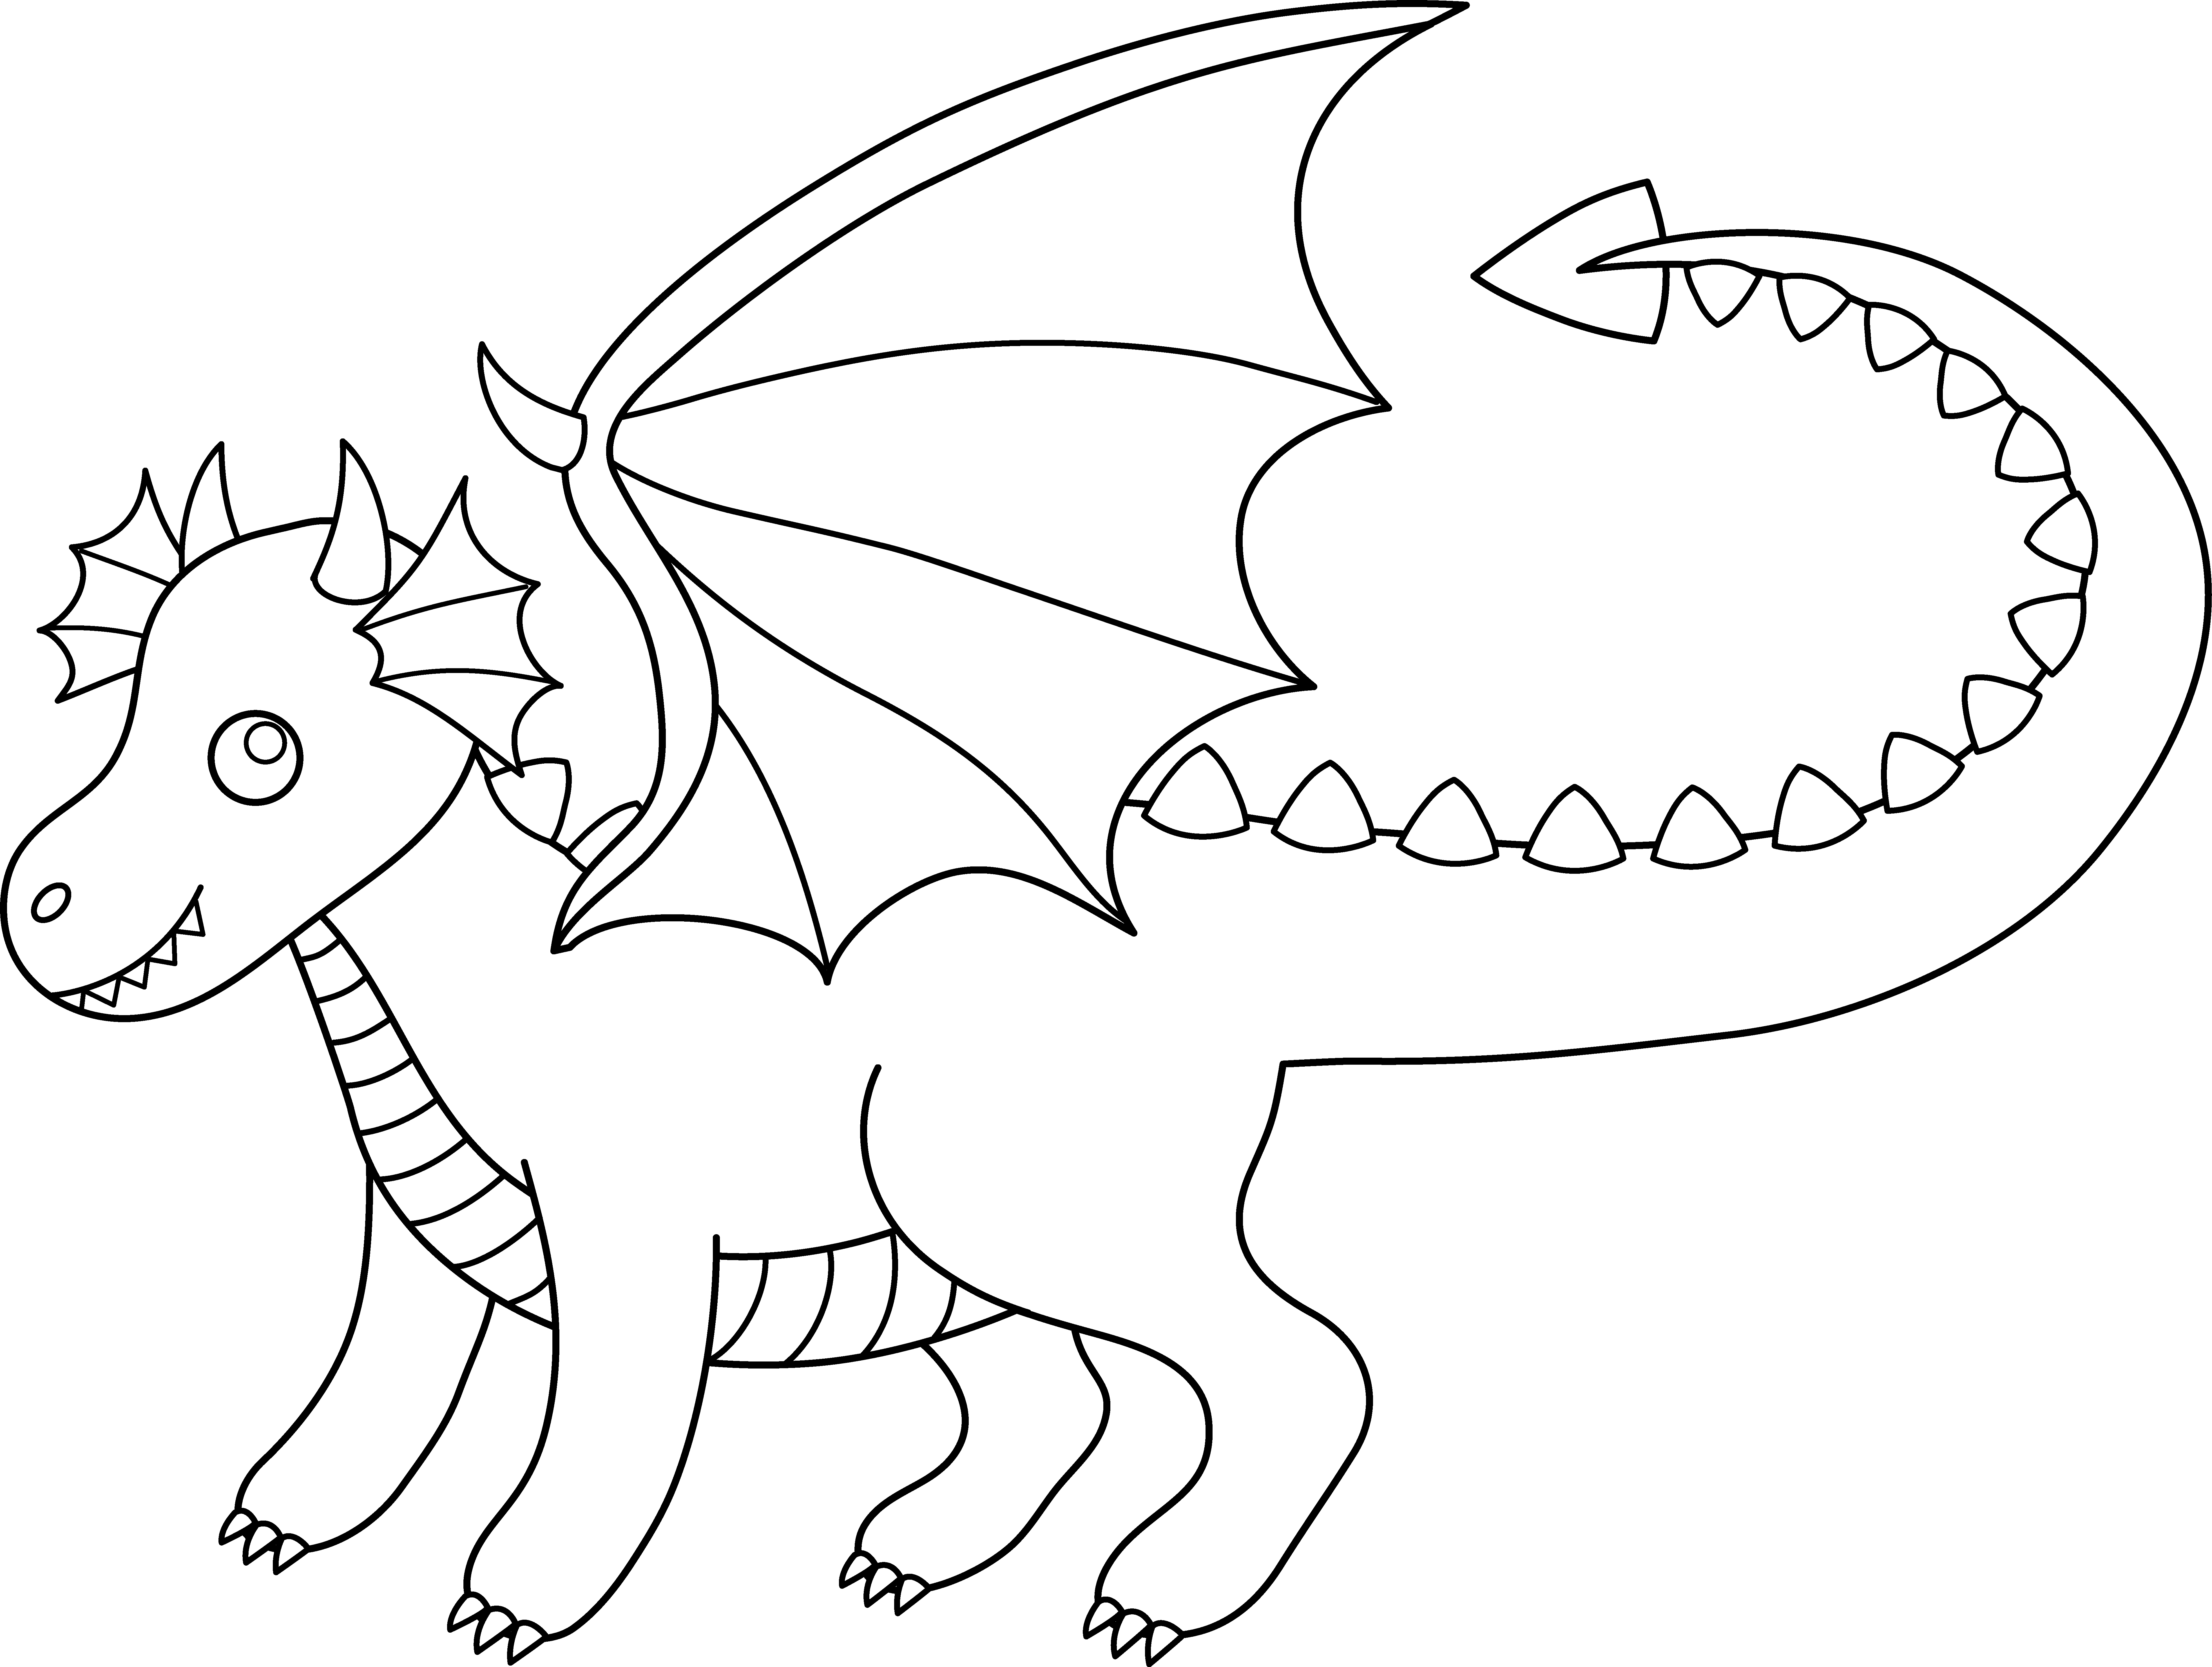 dragon outline how to draw a black dragon black dragon step by step outline dragon